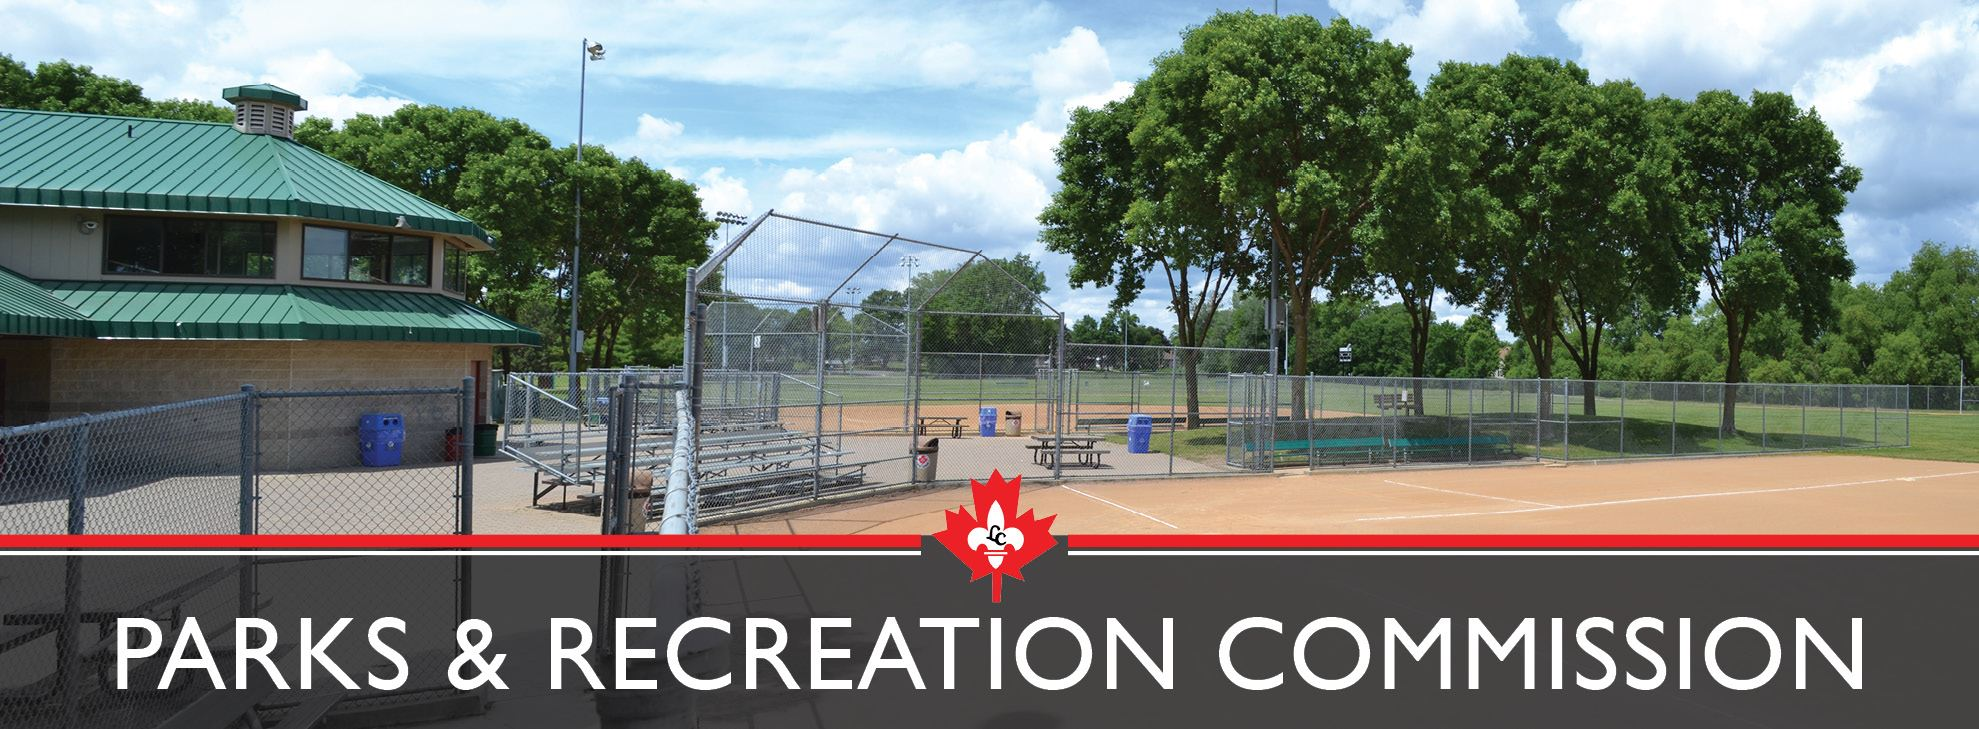 Little Canada Parks and Recreation Commission image banner